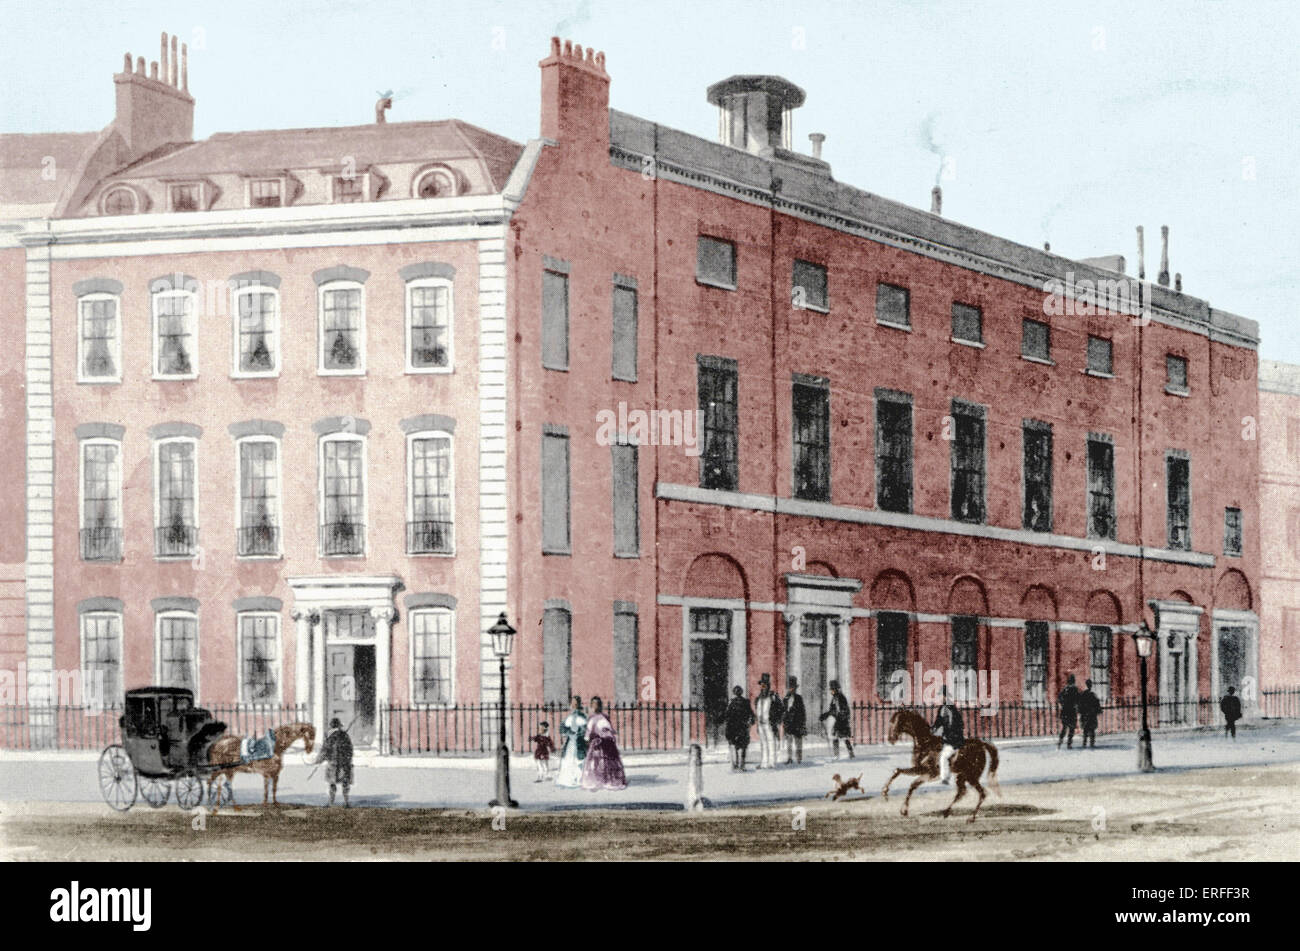 Hanover Square Rooms in London, c.1830s. Haydn's music performed here when he was in London - impresario Salomon - Stock Image